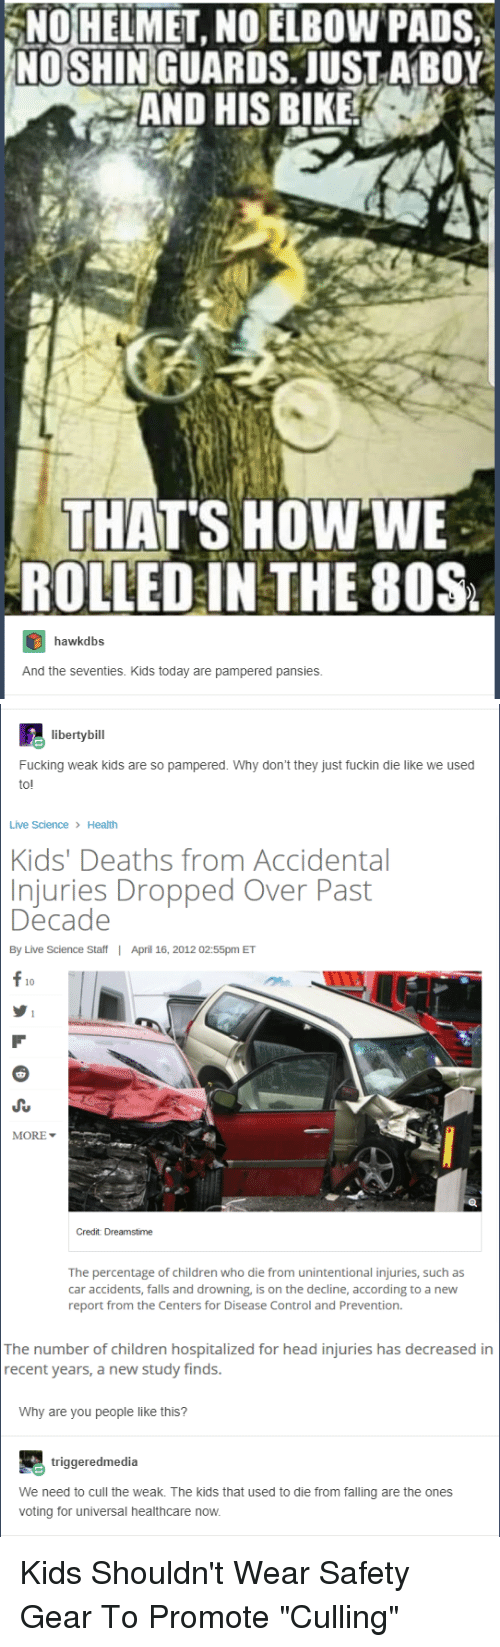 "80s, Children, and Fucking: NOHELMET, NOELBOW PADS  NO SHINIGUARDS, JUSTABOY  AND HIS BIKE  THAT'S HOWWE  ROLLED IN THE 80S  hawkdbs  And the seventies. Kids today are pampered pansies.   libertybill  Fucking weak kids are so pampered. Why don't they just fuckin die like we used  to!  Live Science Health  Kids' Deaths from Accidental  njuries Dropped Over Past  Decade  By Live Science Staff  I  April 16, 2012 02:55pm ET  f 10  MORE ▼  Credit Dreamstime  The percentage of children who die from unintentional injuries, such as  car accidents, falls and drowning, is on the decline, according to a new  report from the Centers for Disease Control and Prevention.  The number of children hospitalized for head injuries has decreased in  recent years, a new study finds.  Why are you people like this?  triggeredmedia  We need to cull the weak. The kids that used to die from falling are the ones  voting for universal healthcare now. Kids Shouldn't Wear Safety Gear To Promote ""Culling"""